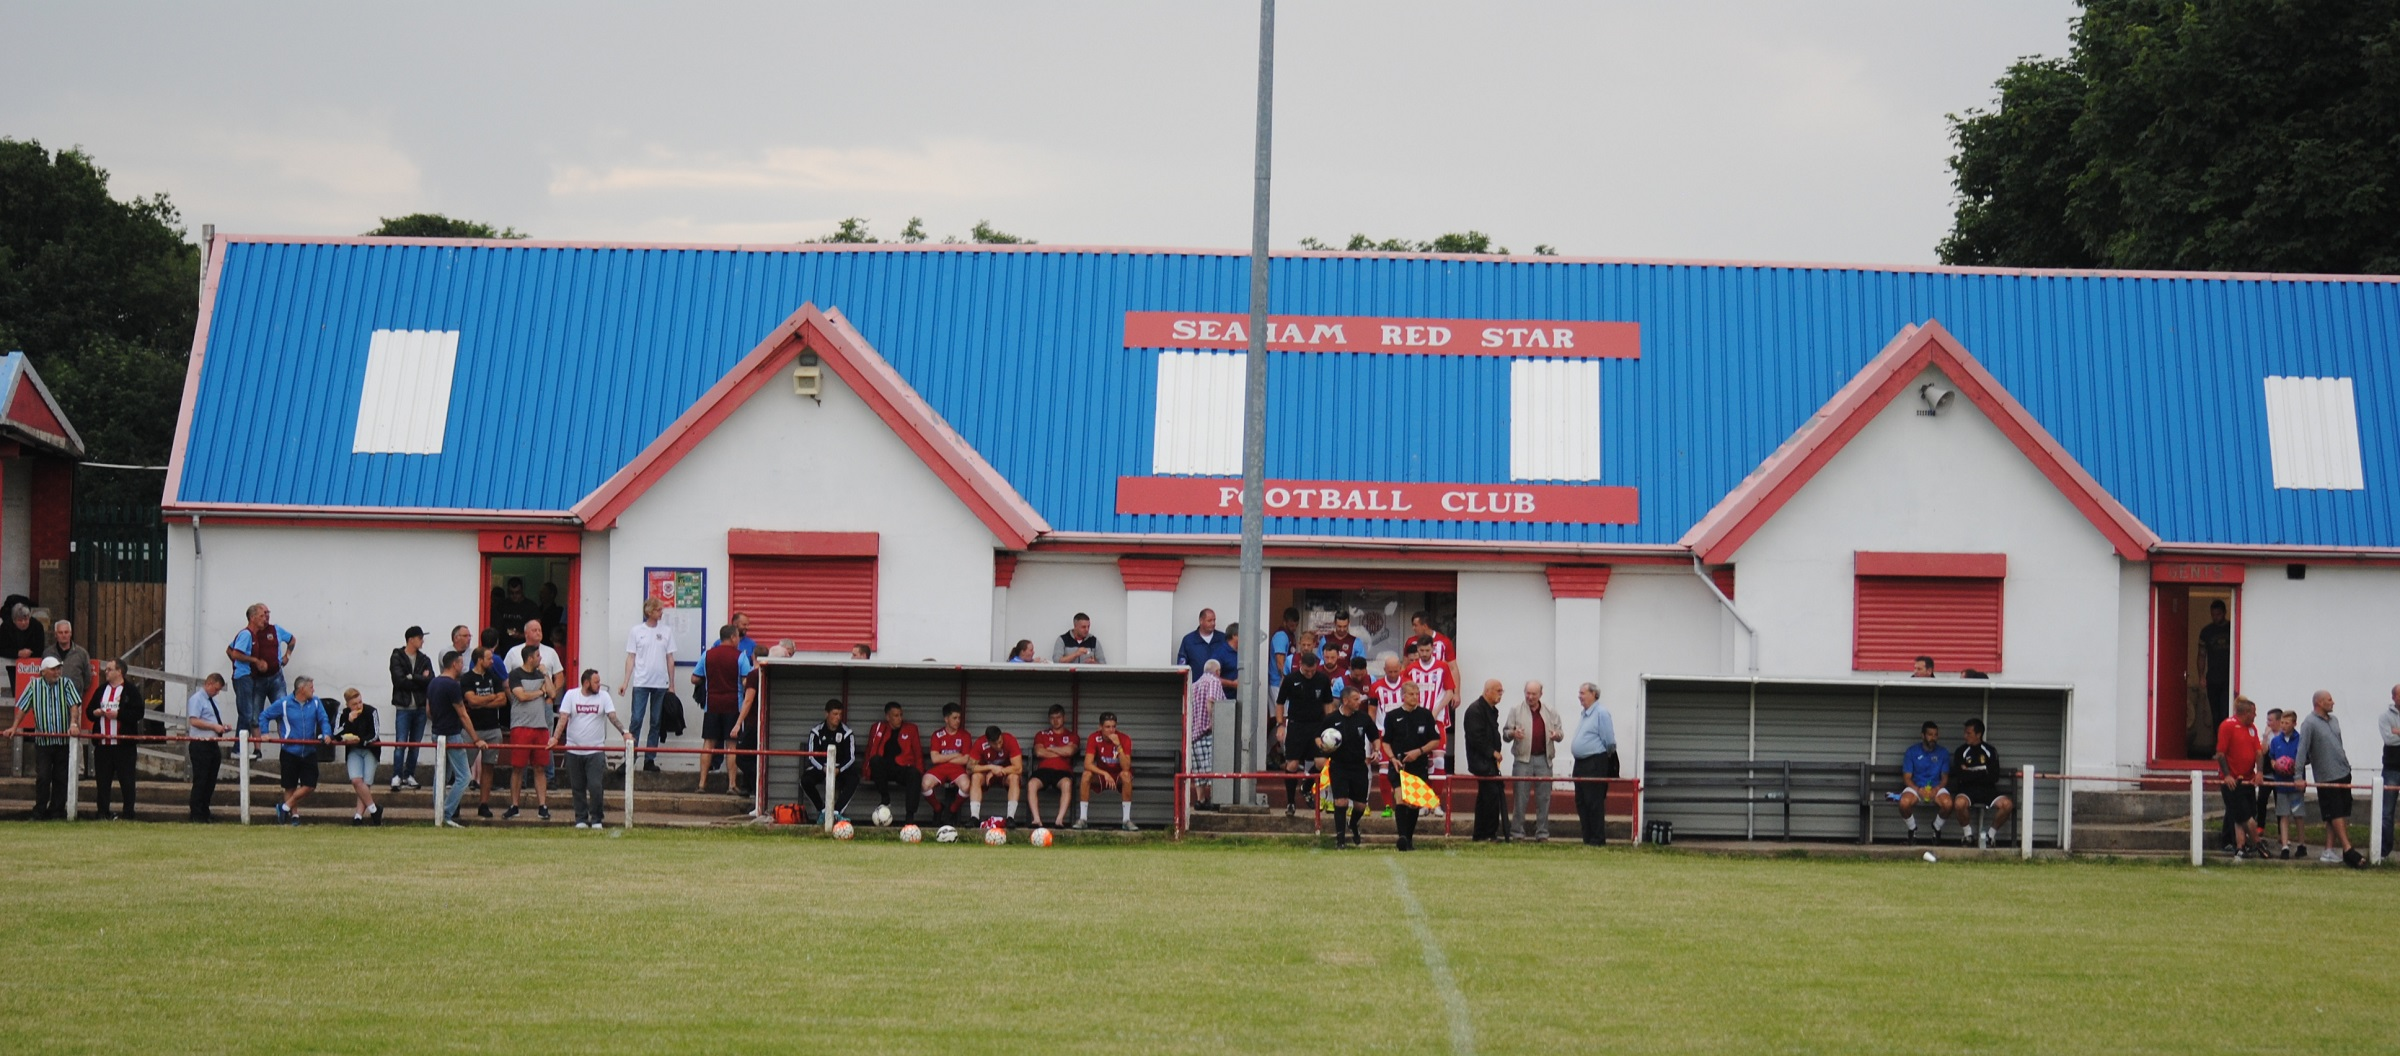 Seaham Red Star vs South Shields